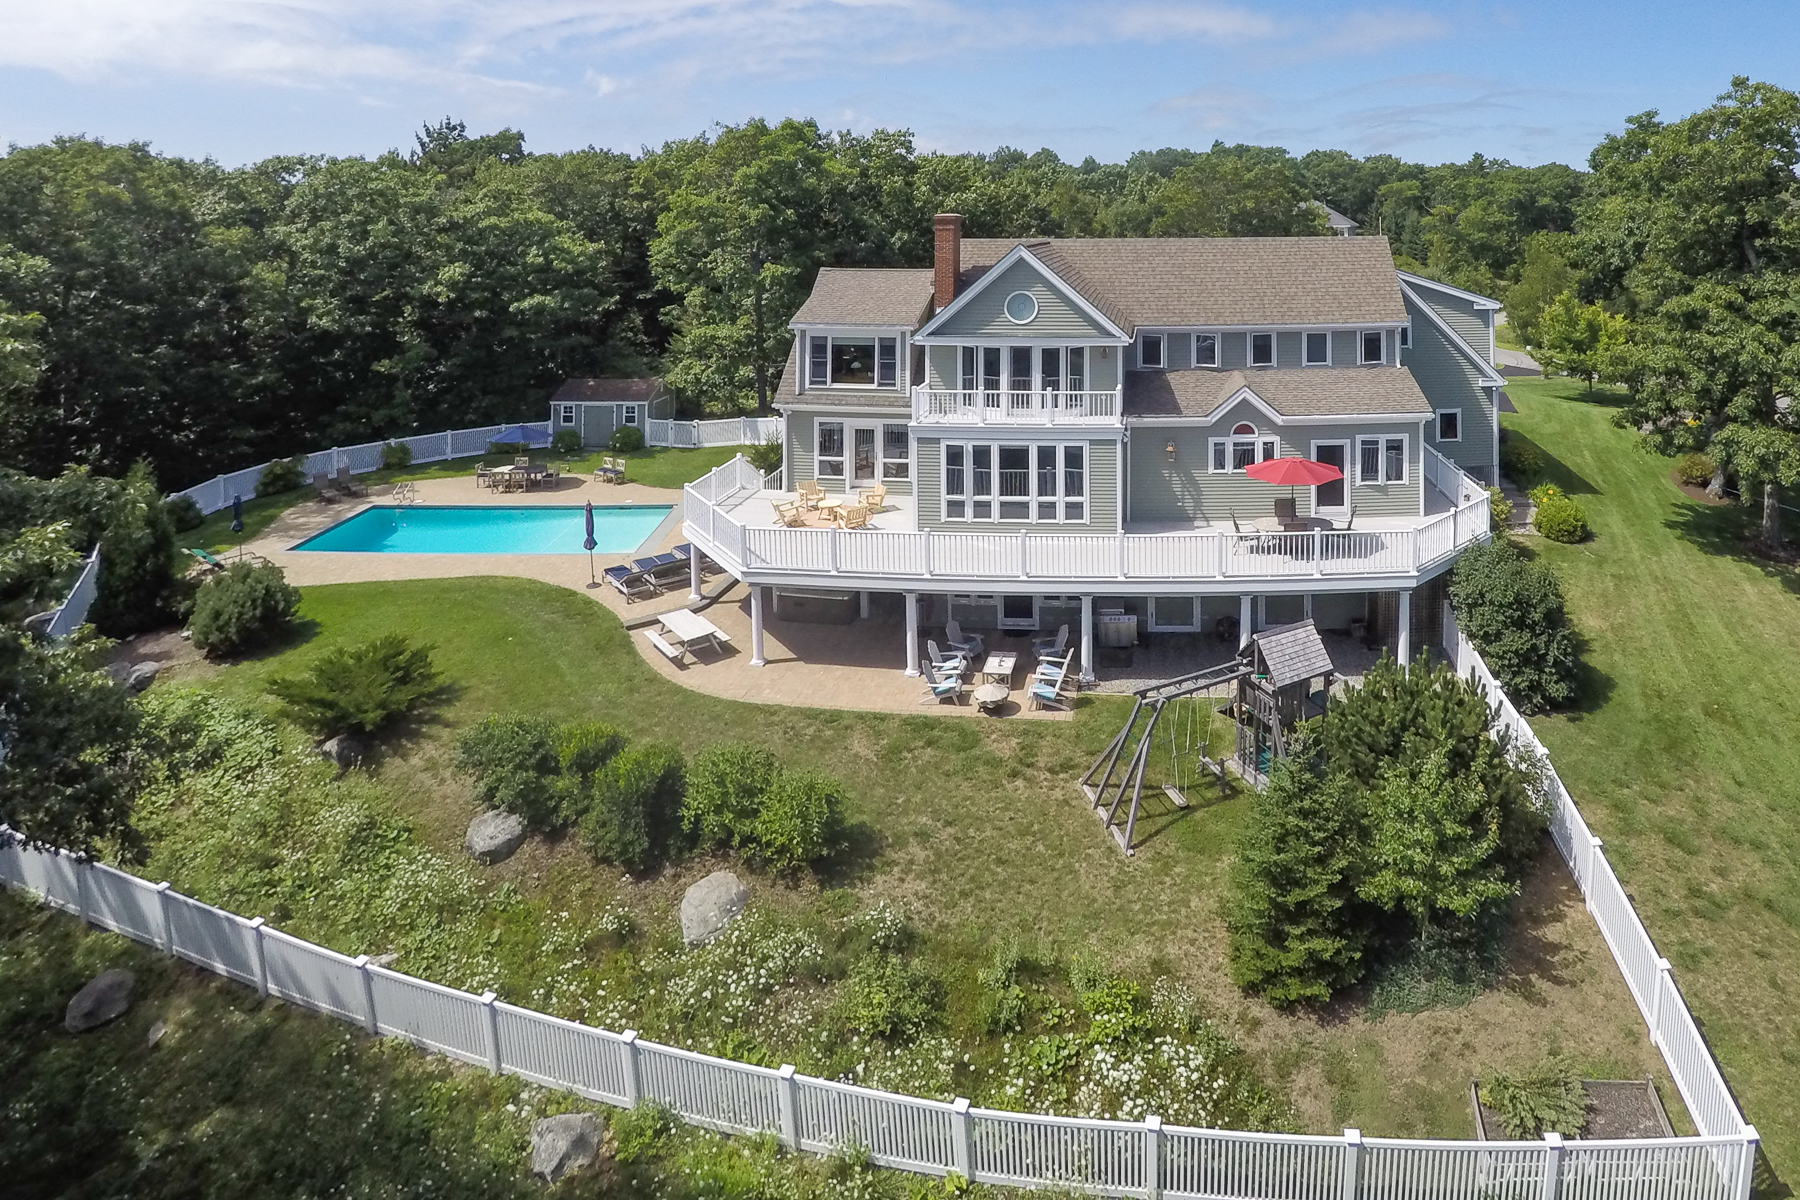 22 Wellington Dr, Rockport, ME 04856